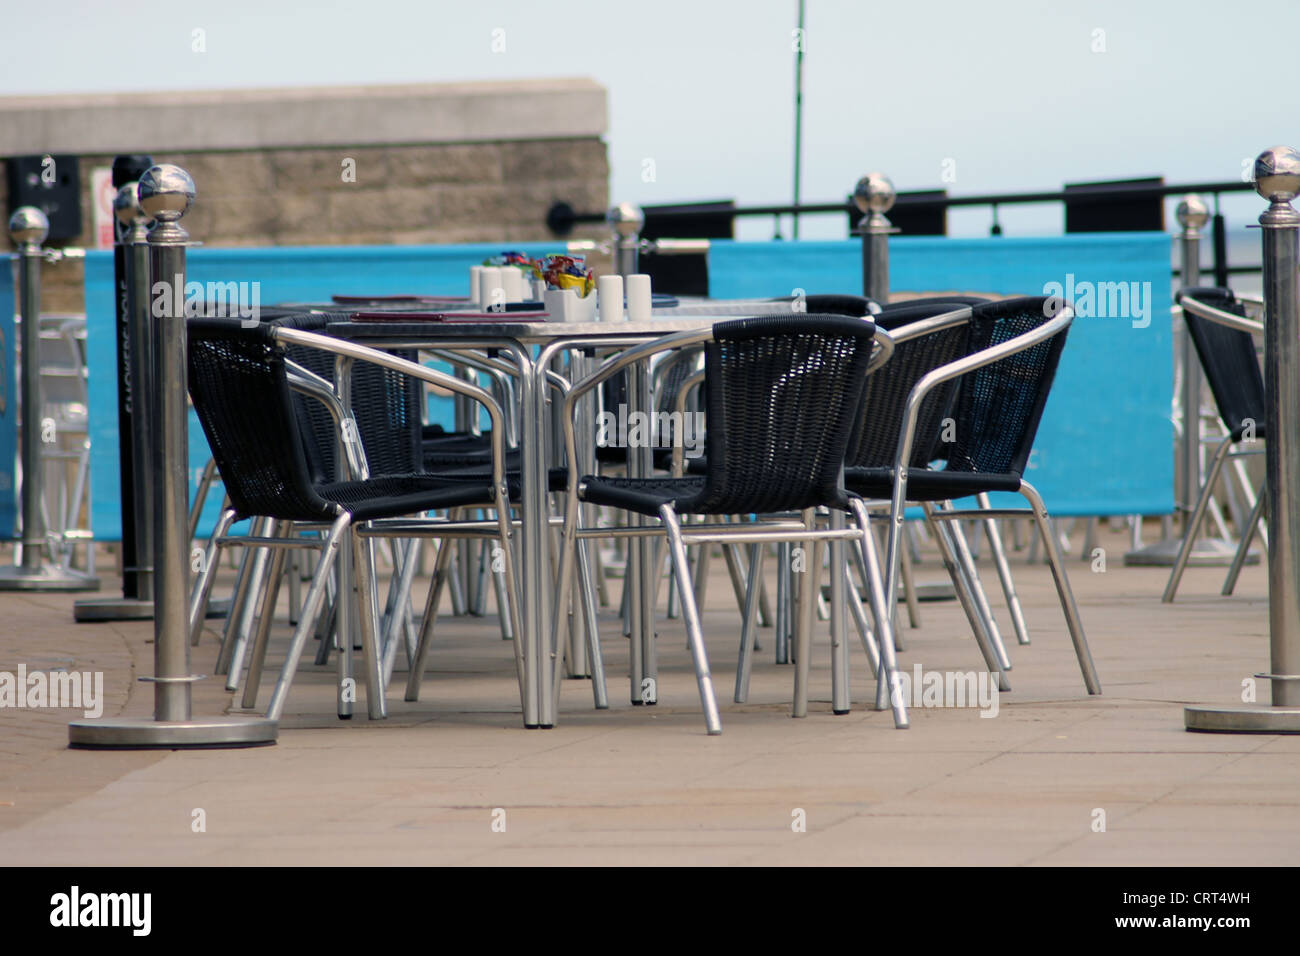 Scenic view of vacant seats in outdoor café. - Stock Image